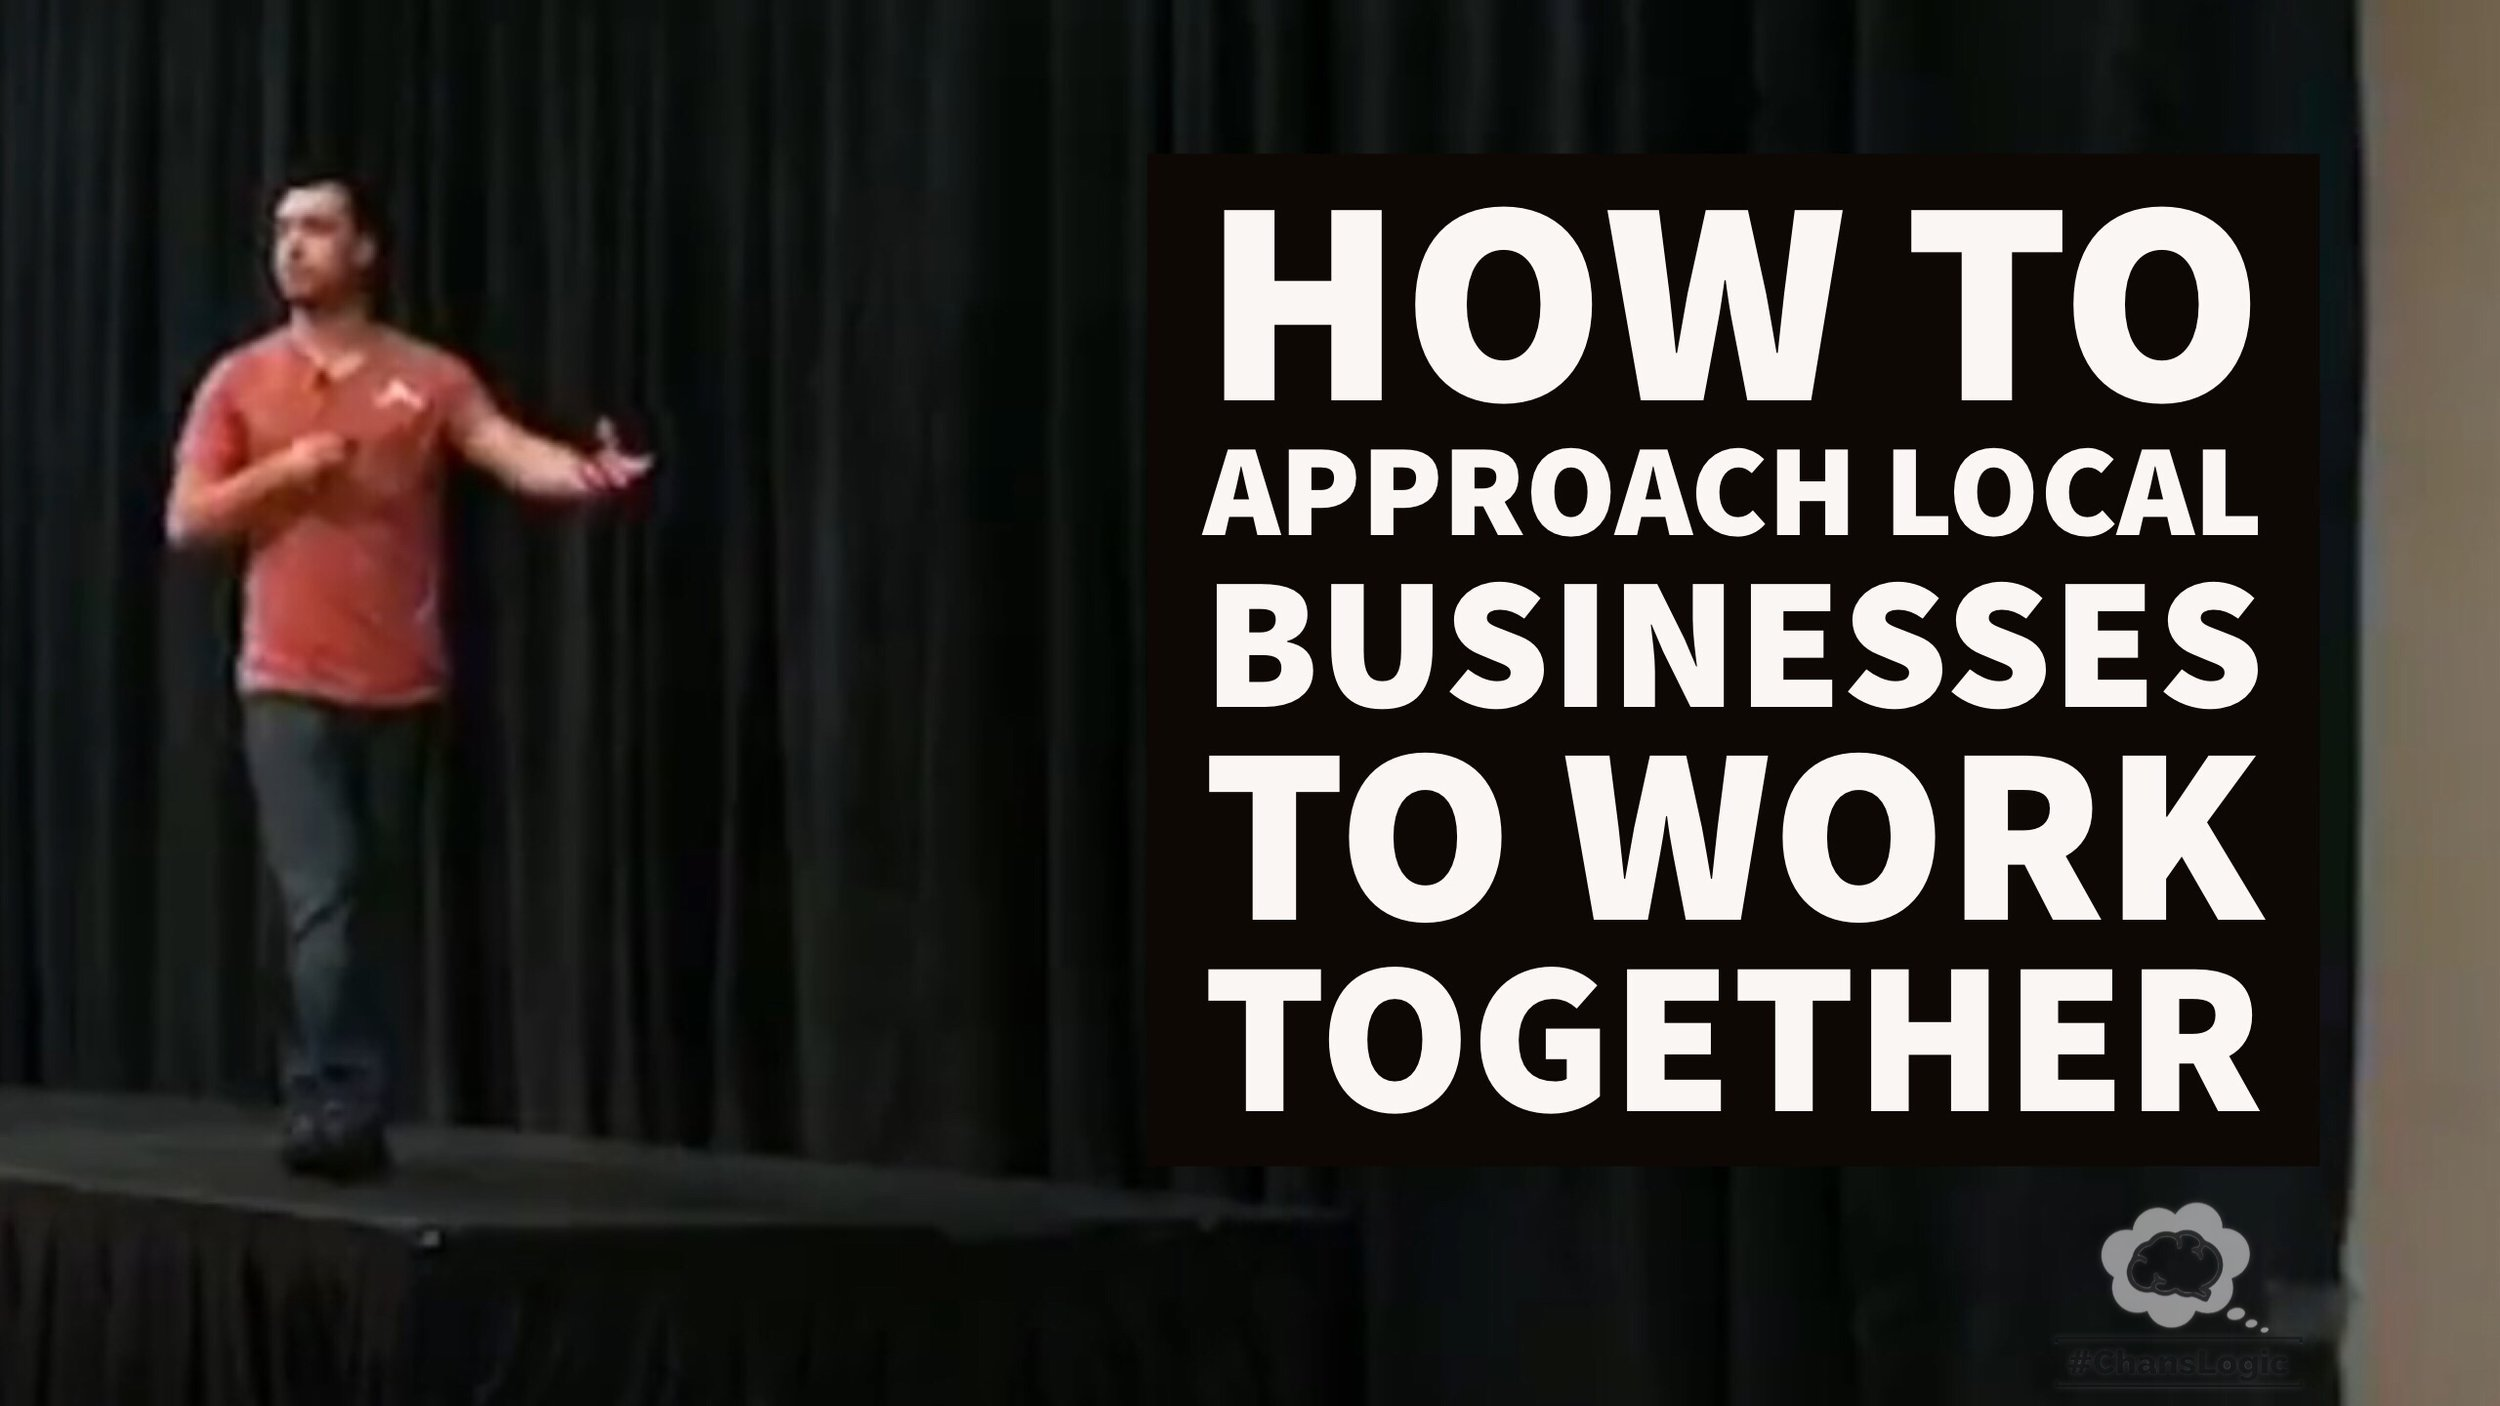 How To Approach Local Businesses To Work Together